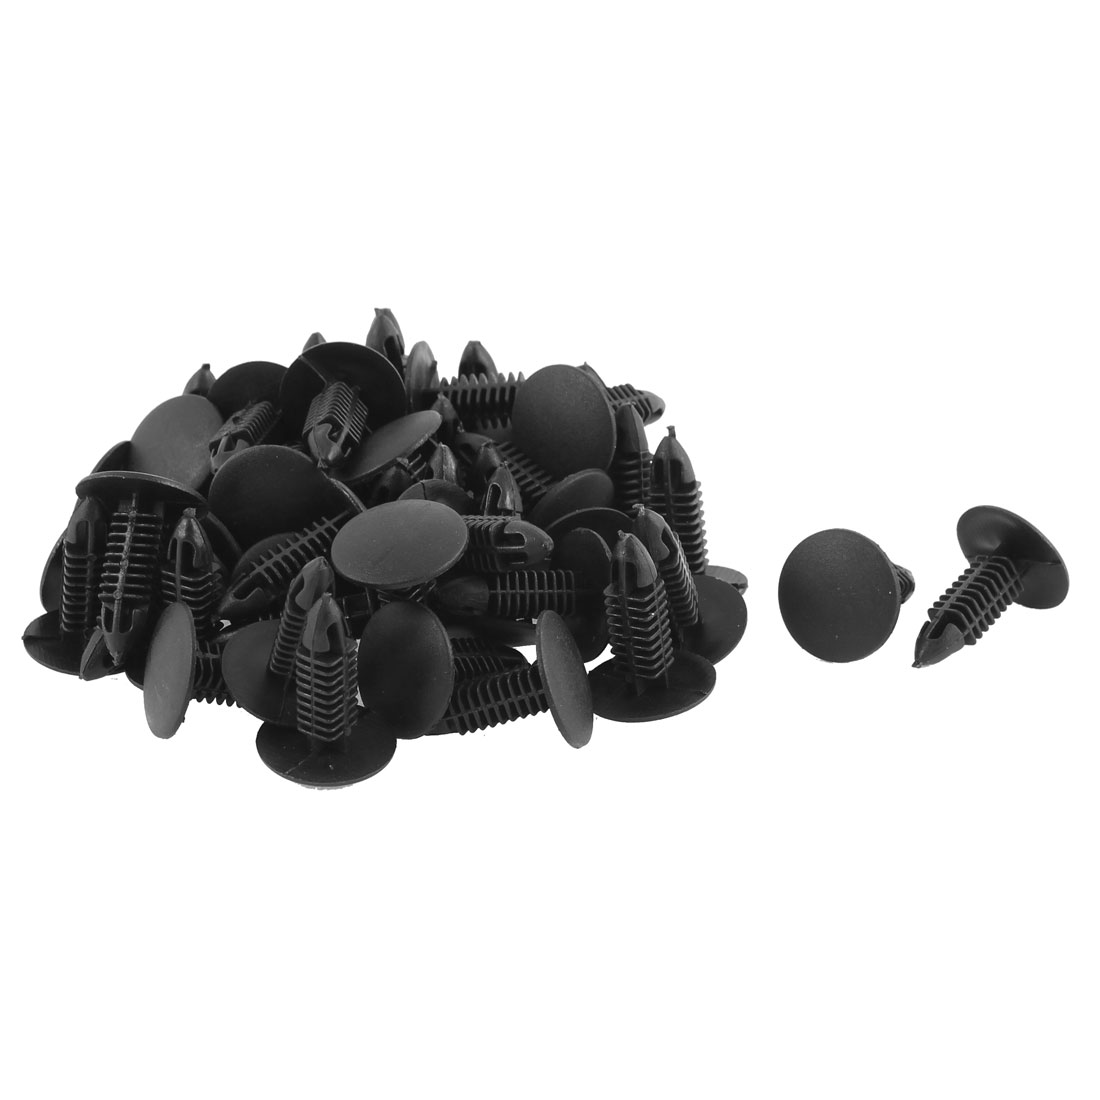 Car Plastic Push Type Fasteners Clip Rivet Black 50pcs for 6 x 7mm Hole Dia